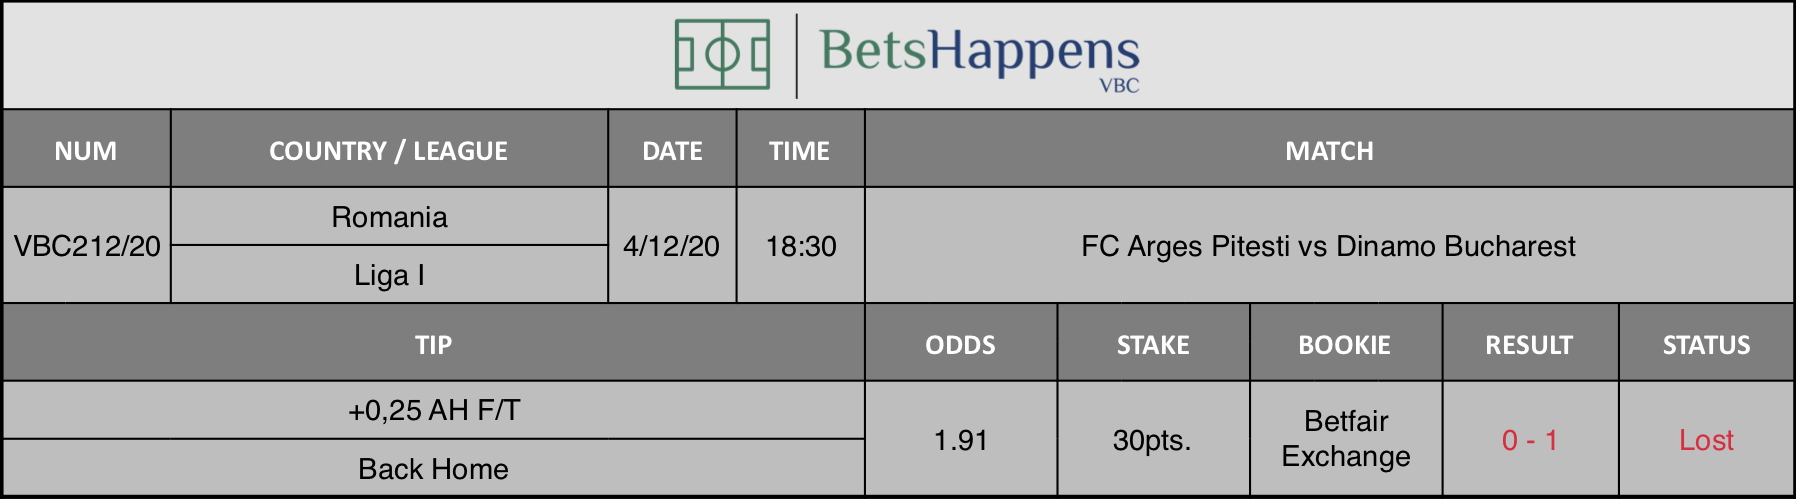 Results of our tip for the FC Arges Pitesti vs Dinamo Bucharest match where +0,25 AH F/T Back Home is recommended.